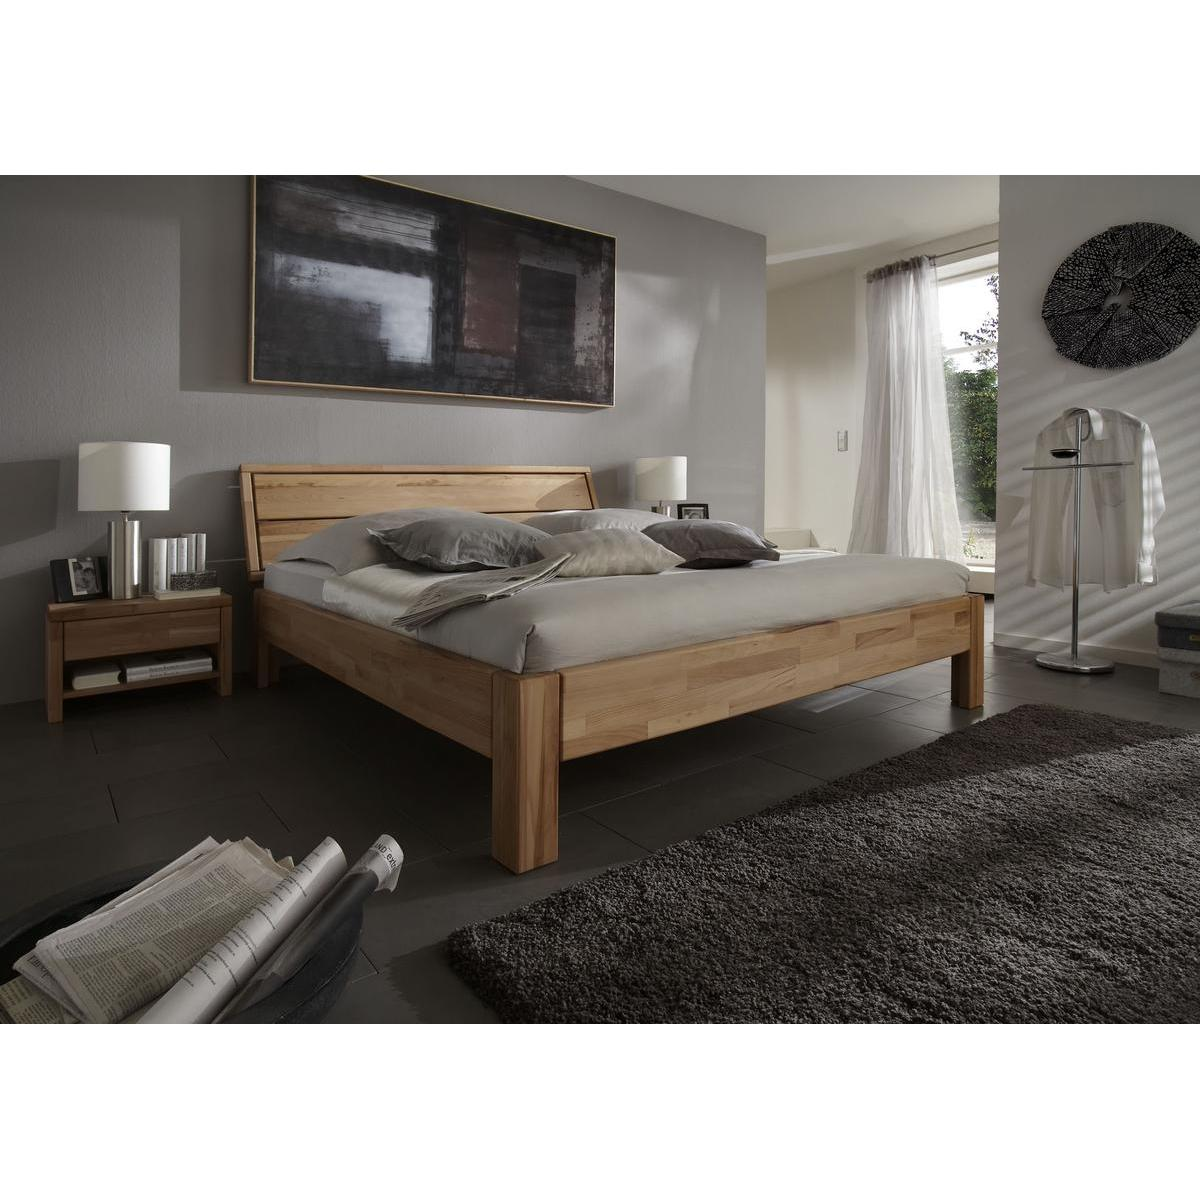 massivholz bett 180x200 easy sleep kernbuche massiv ge lt 9418 93 89. Black Bedroom Furniture Sets. Home Design Ideas